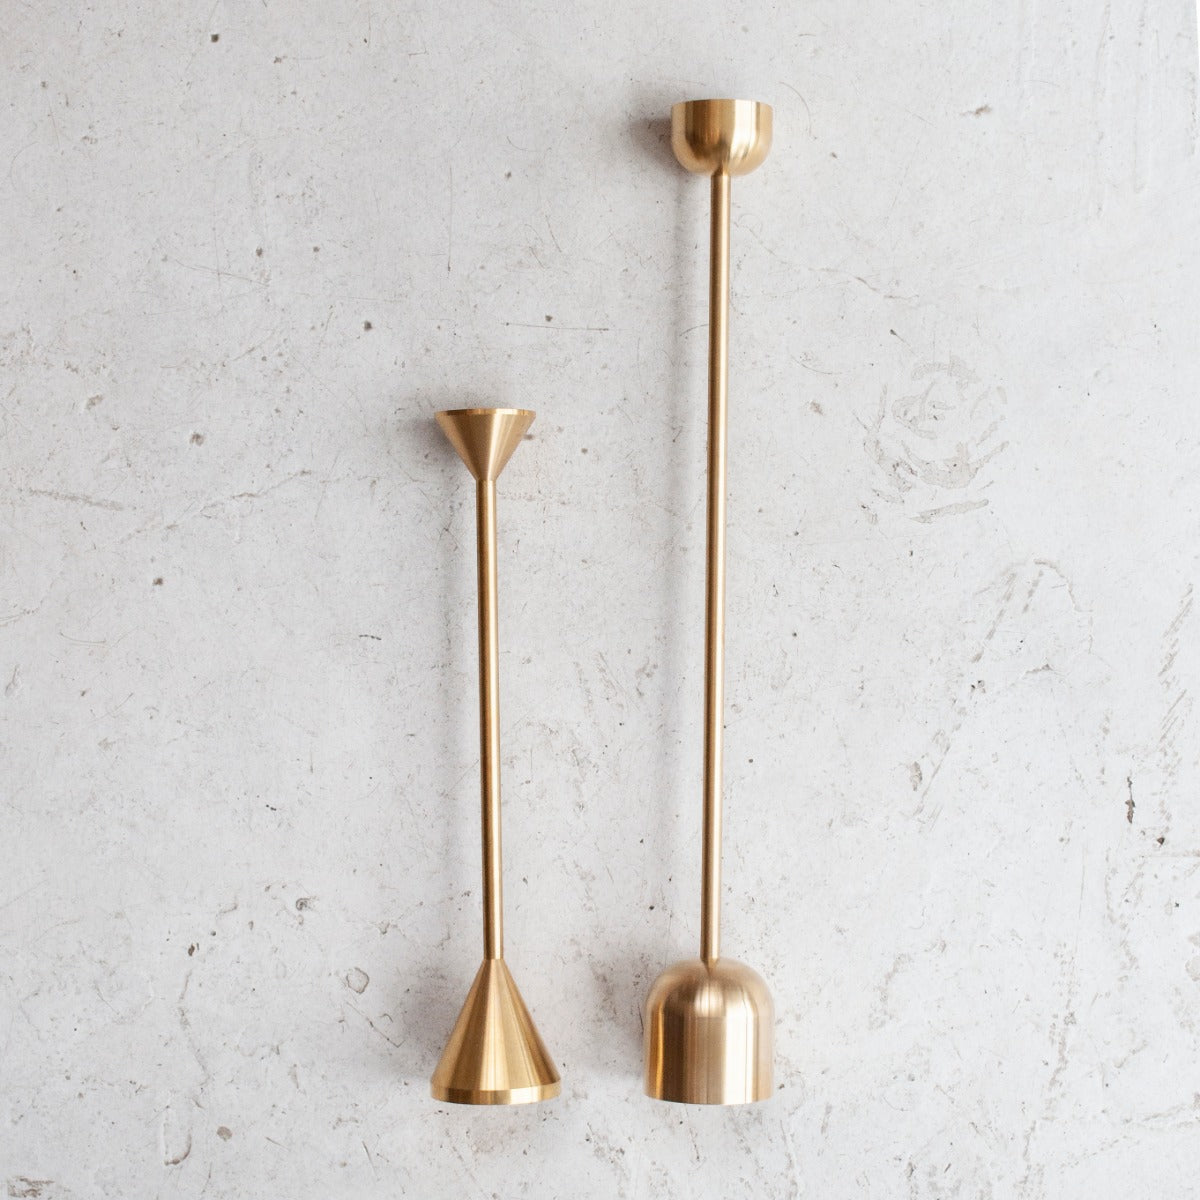 Fort Standard's tall brass candlestick with dome shaped base